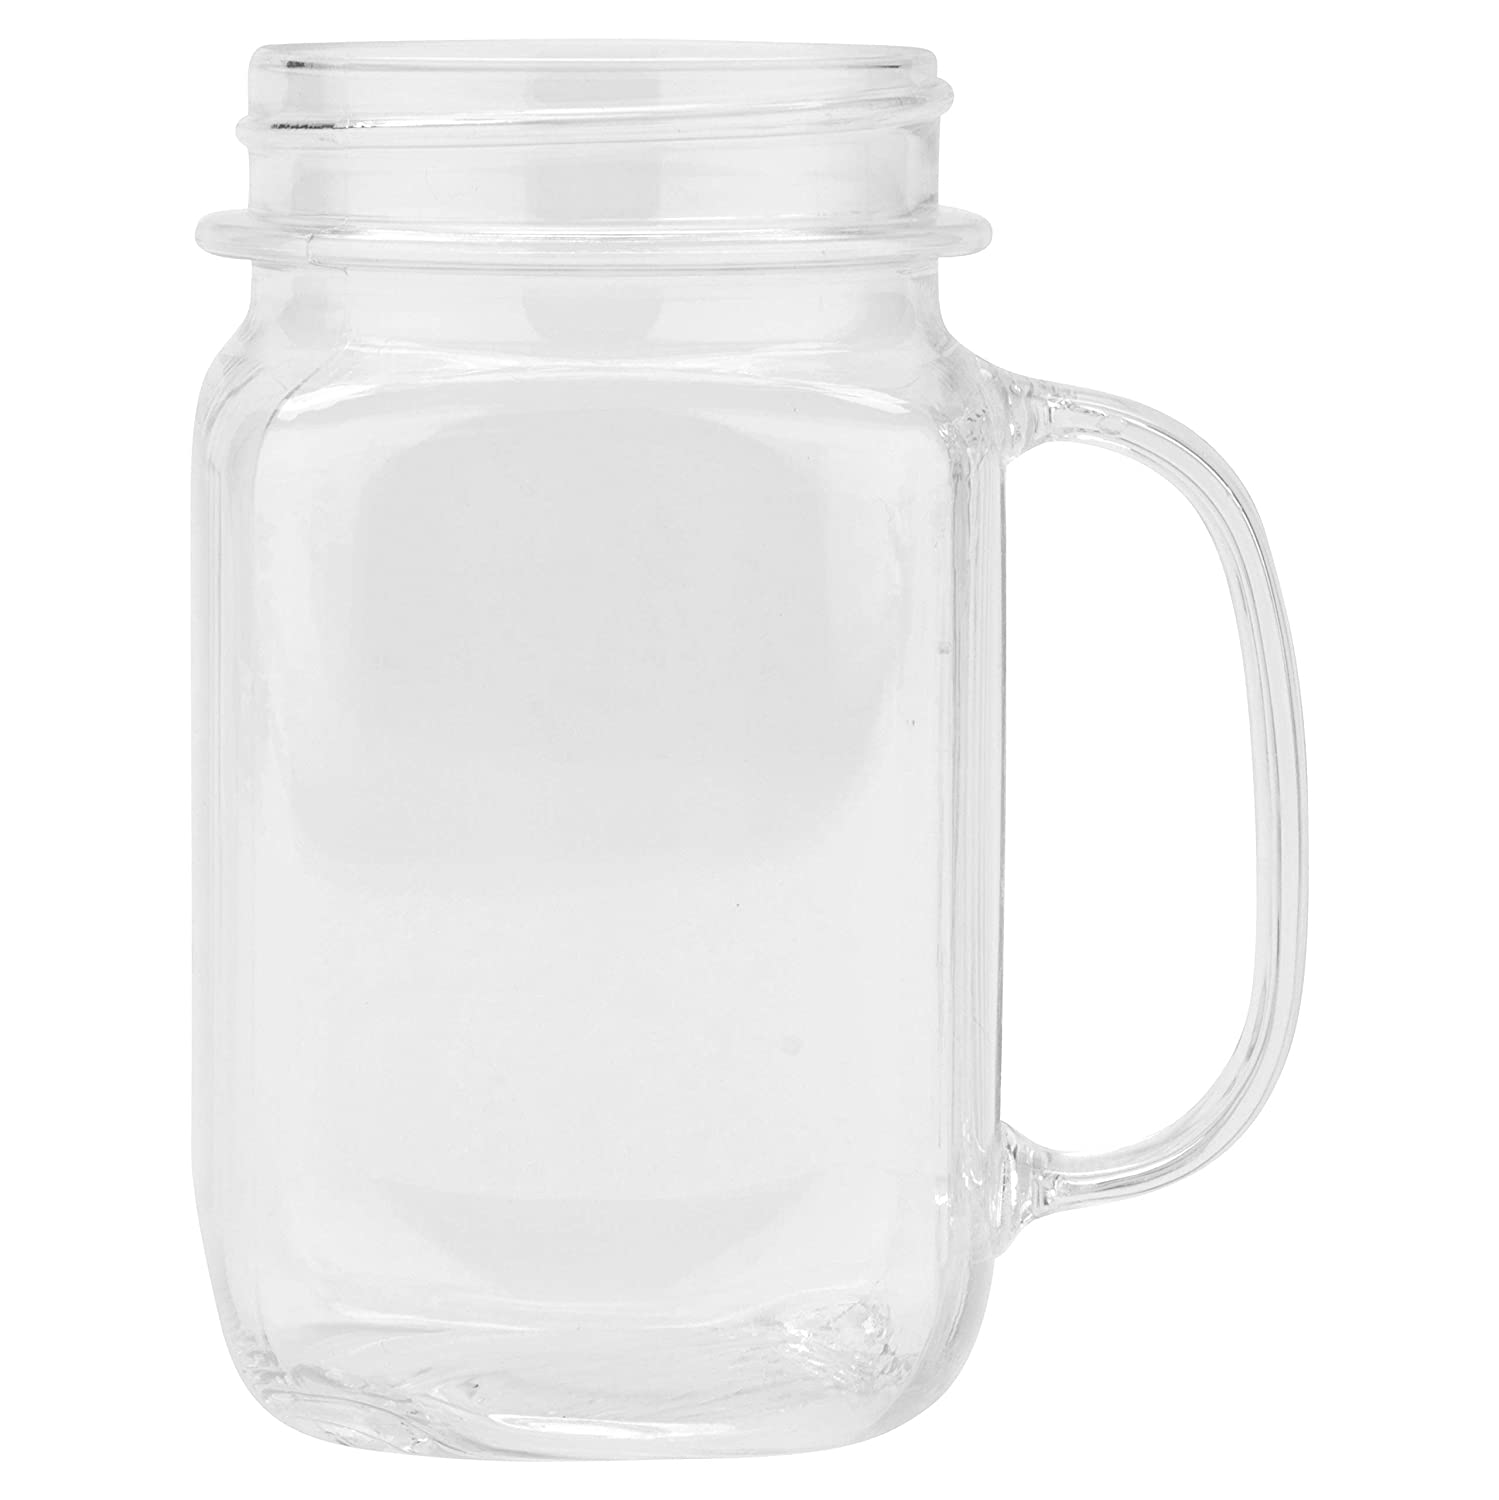 Amazon Com Get Mas 3 Cl Cheers Break Resistant Plastic Mason Jars 16 Ounce Clear Set Of 12 Industrial Scientific